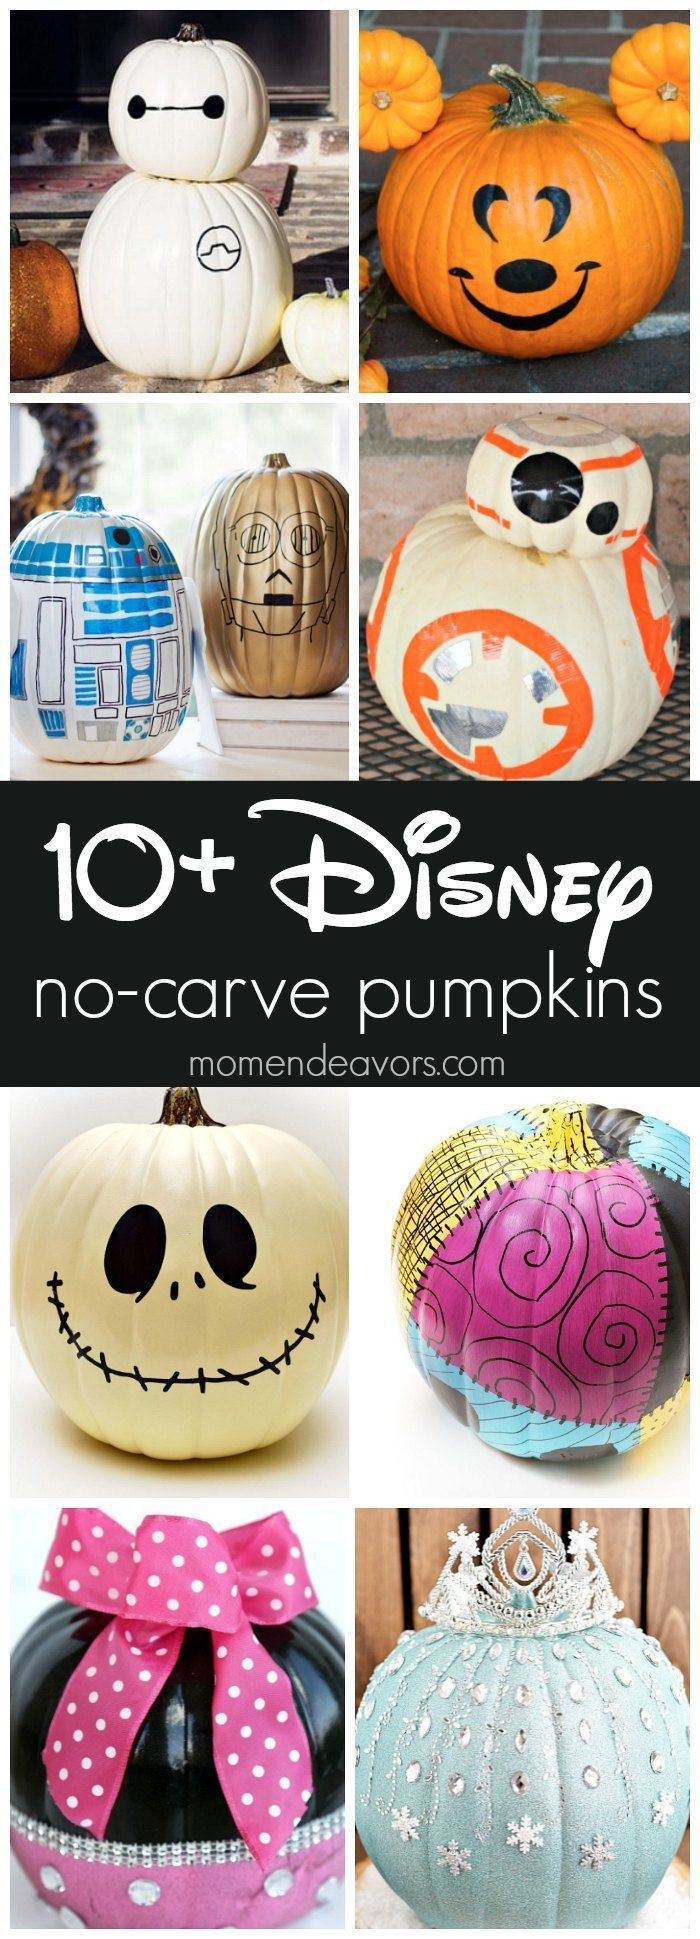 10 best no carve disney halloween pumpkins - Halloween Pumpkin Designs Without Carving